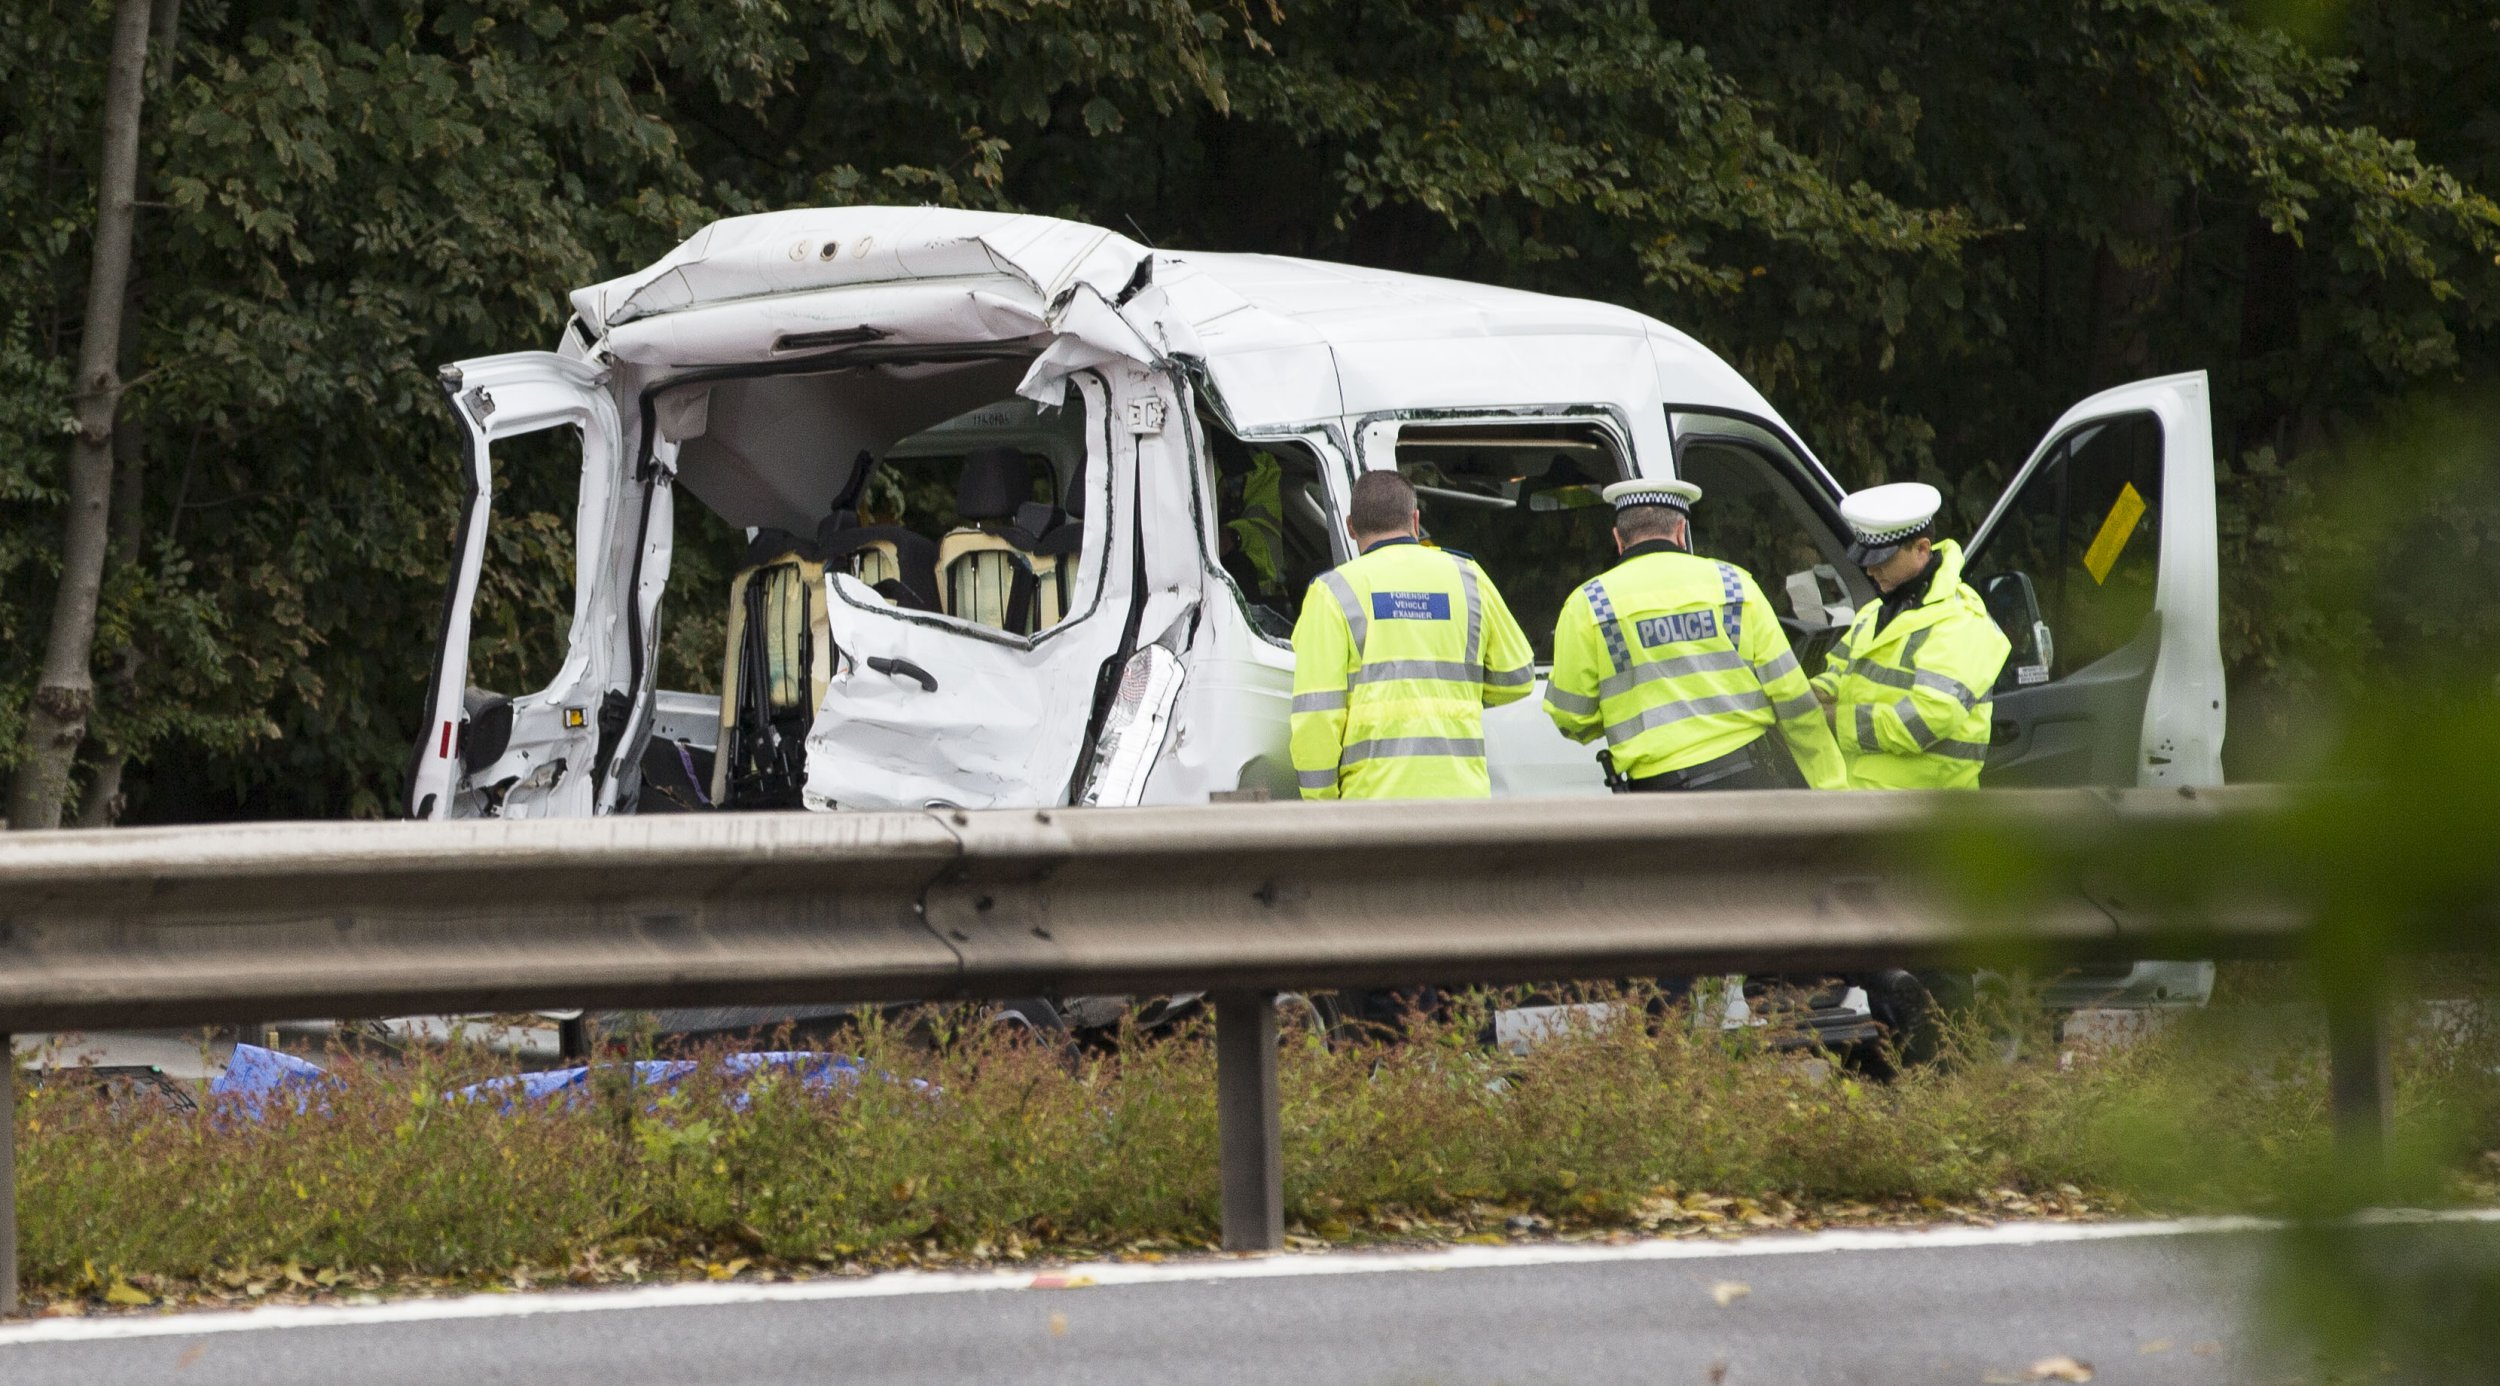 INS News Agency Ltd. 12/10/2018 *************** Picture by INS News Desk *************** Crash on M4 between minibus and lorry left two teachers from a residential school for children and young people with autism, dead. The collision also left three other teachers with serious injuries and the three young people who they were escorting back form a work placement when they were hit. The M4 motorway between junction 14, Hungerford, and junction 13, Chieveley, Berks, was closed for hours as three air ambulances landed and emergency services treated the injured. The eastbound carriageway was closed for nine hours in total as accident investigators examined the scene. Pic shows immediate aftermath of the collision on the M4 between the lorry and the minibus which happened on Thursday afternoon. See copy INSpriors